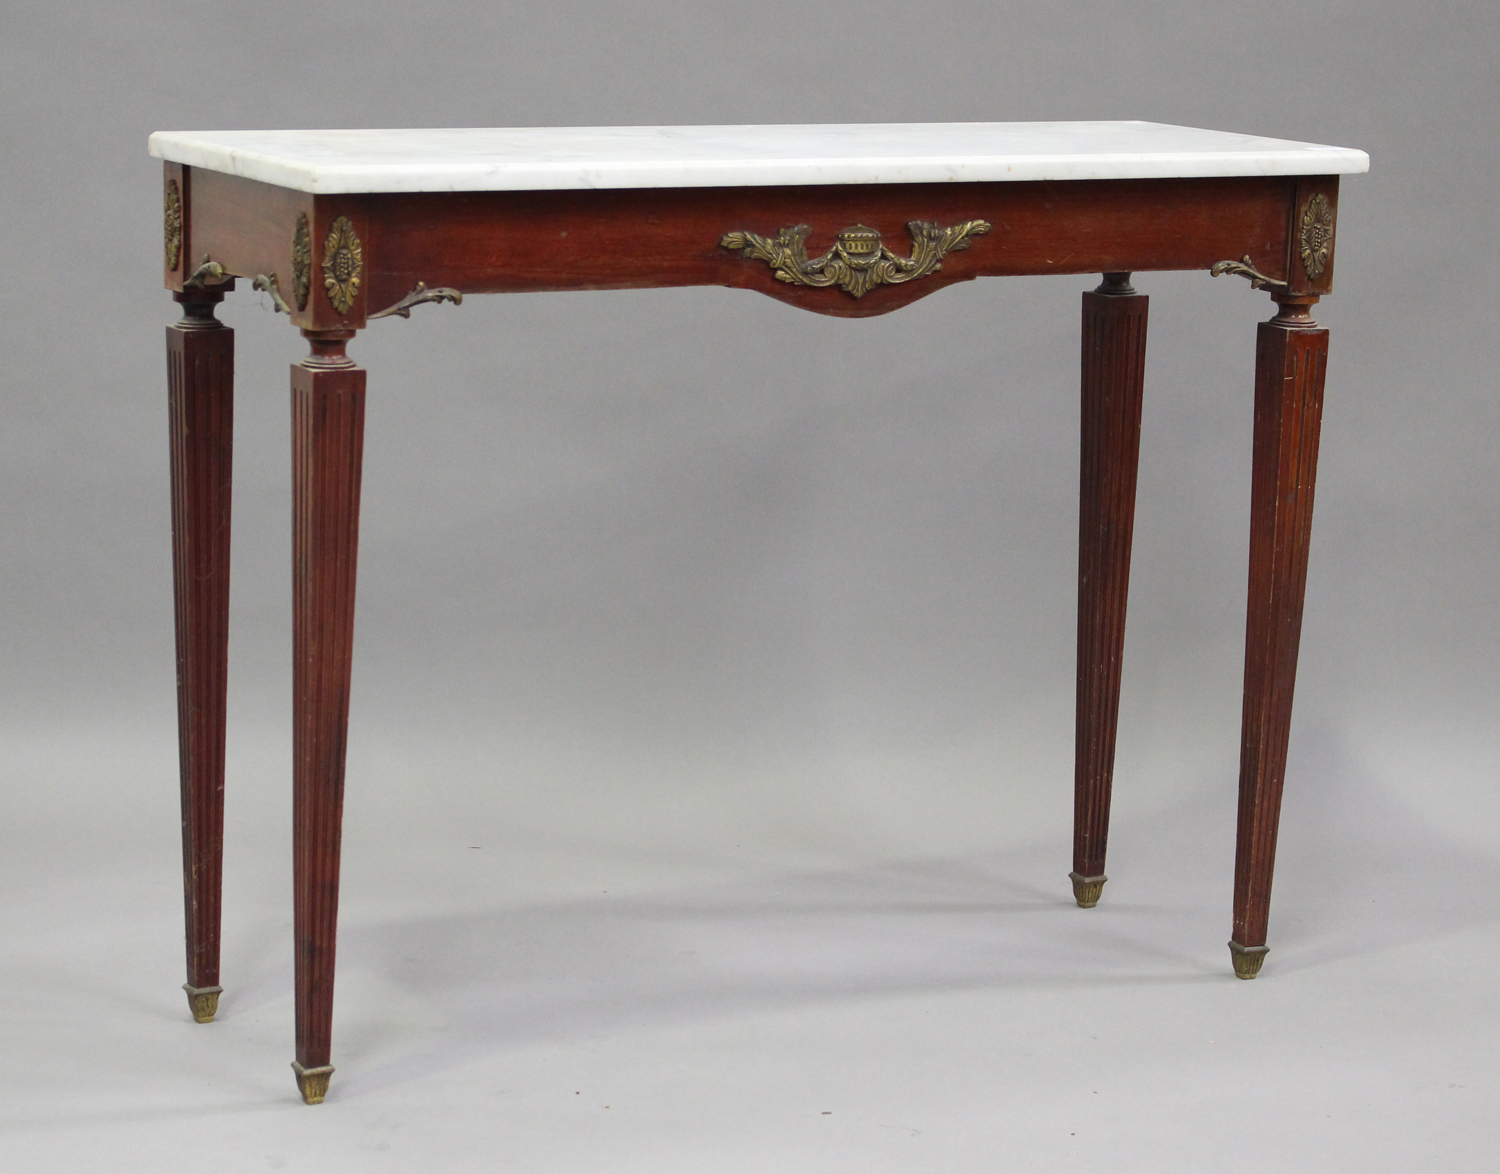 A 20th century Louis XV style mahogany and gilt metal mounted hall table with white marble top, on